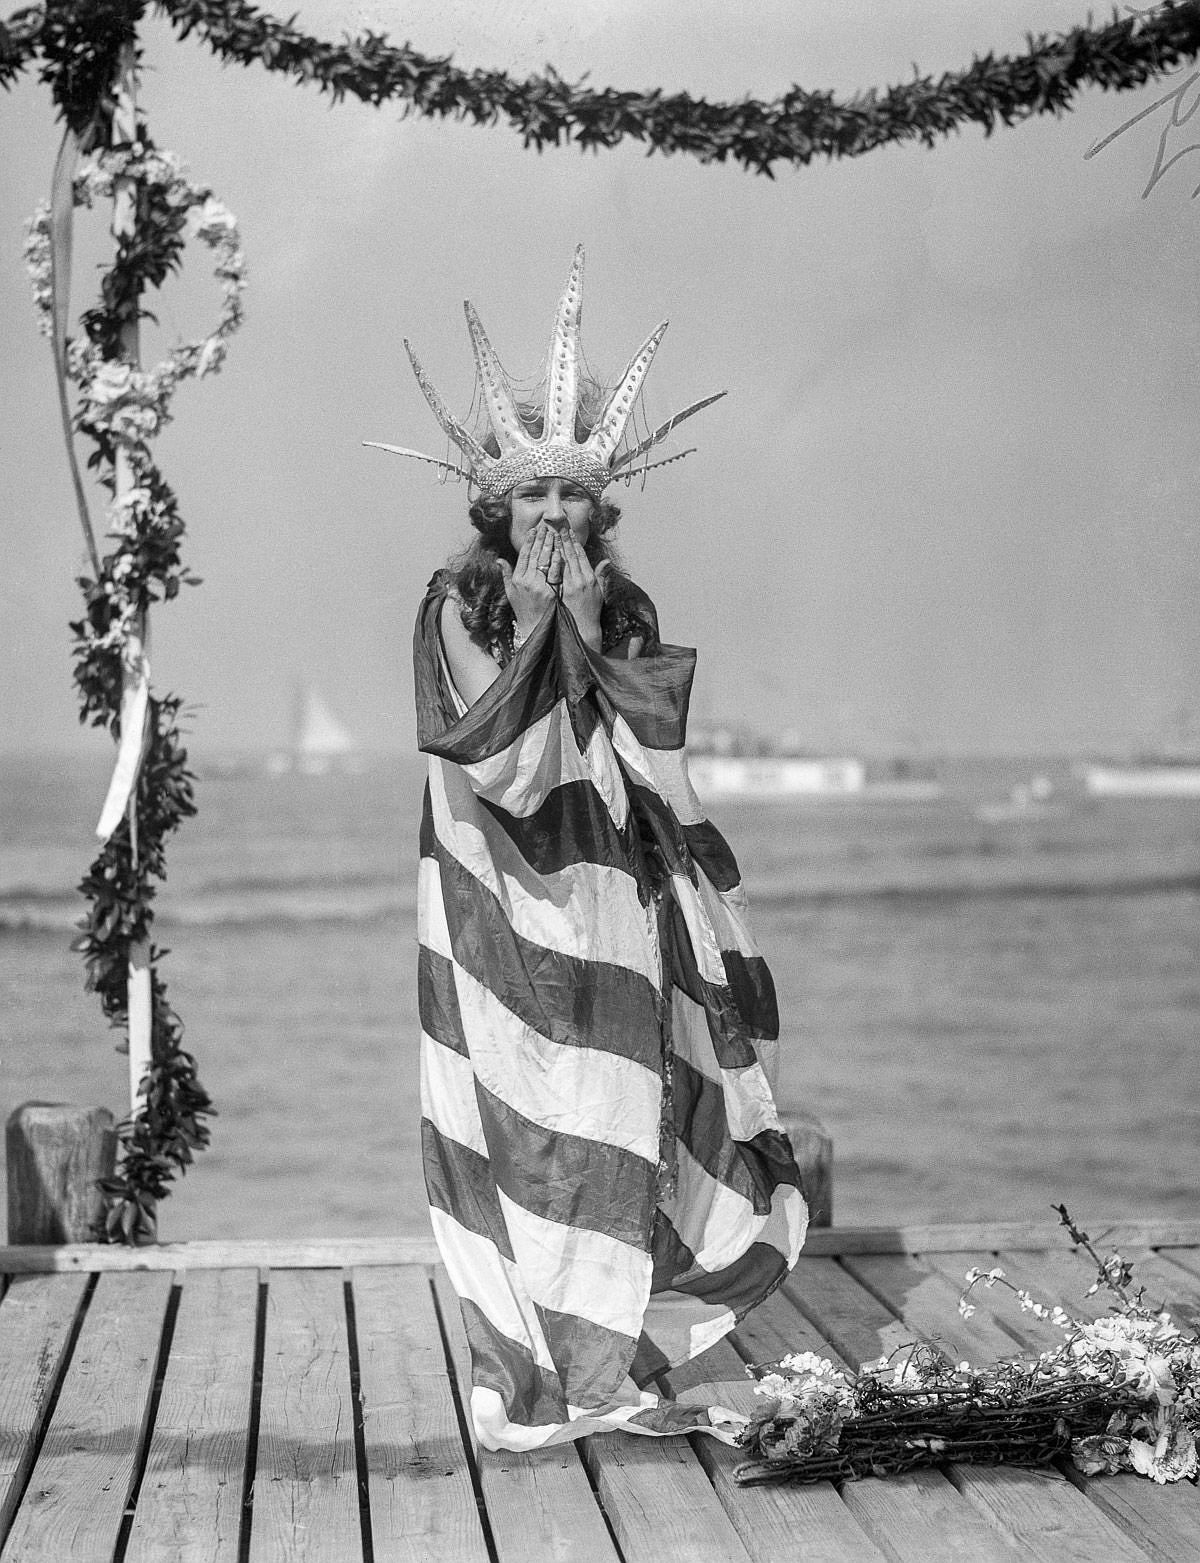 Sept. 7, 1922 - Margaret Gorman, the newly crowned Miss America, awaits the arrival of Neptune in her royal robes at the opening of the Atlantic City Beauty Pageant.